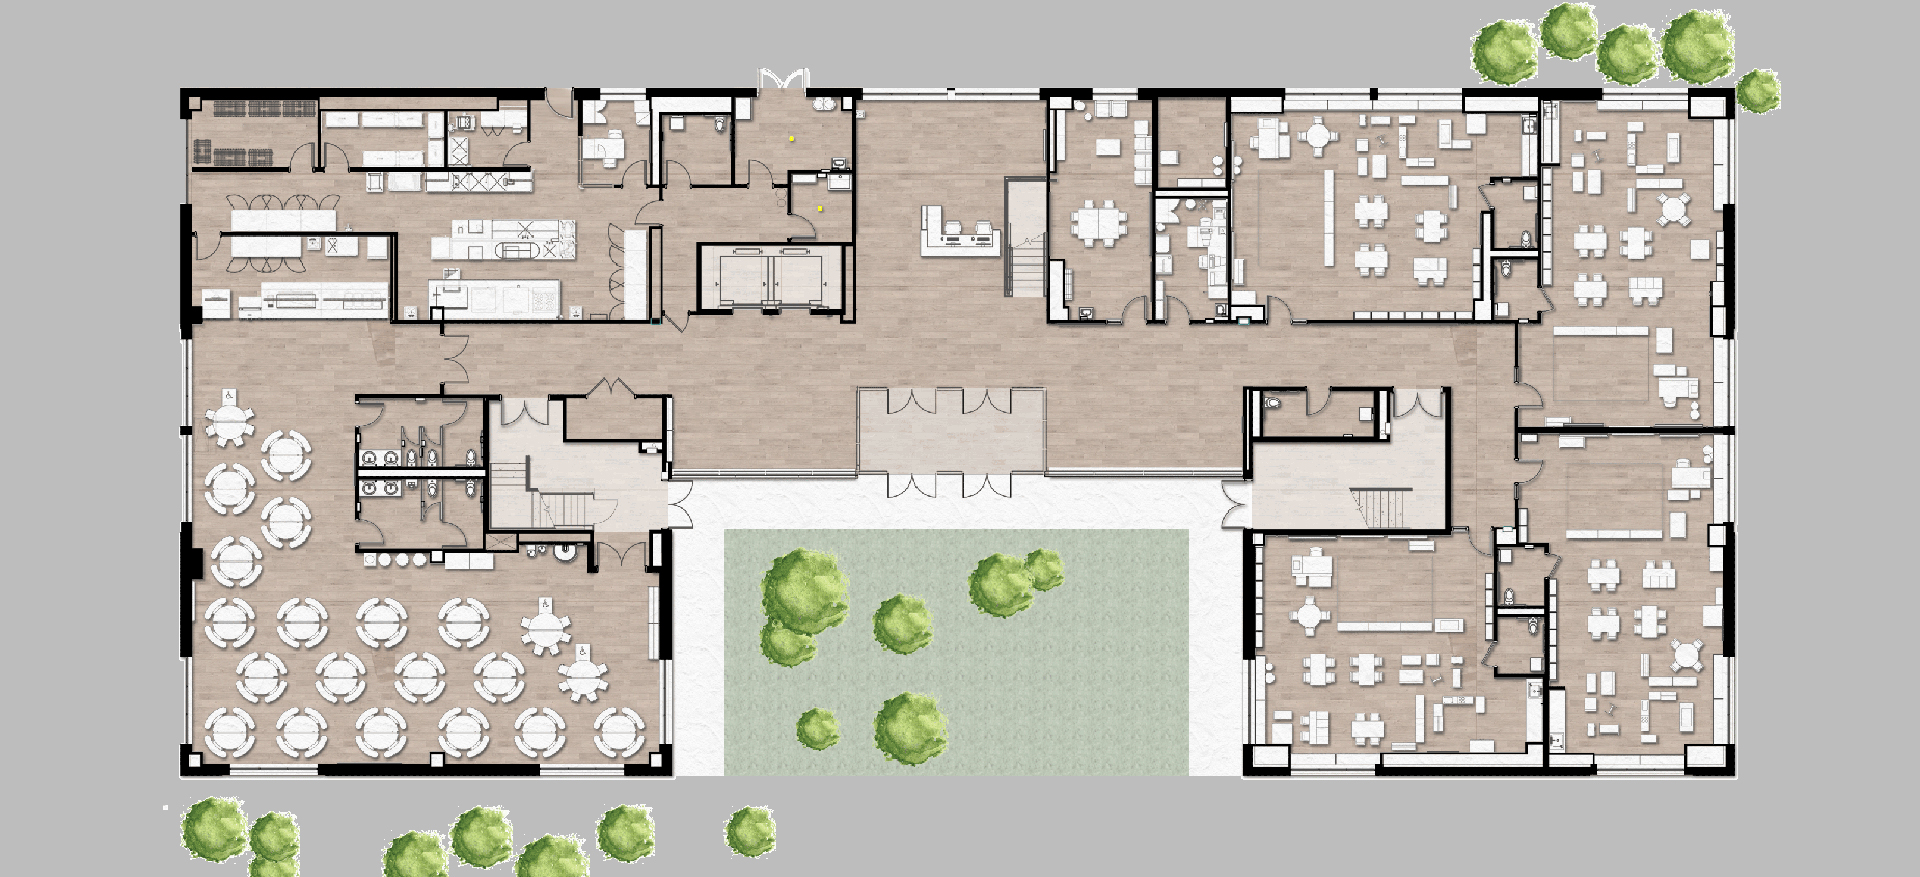 398_FLOORPLAN HOR.jpg